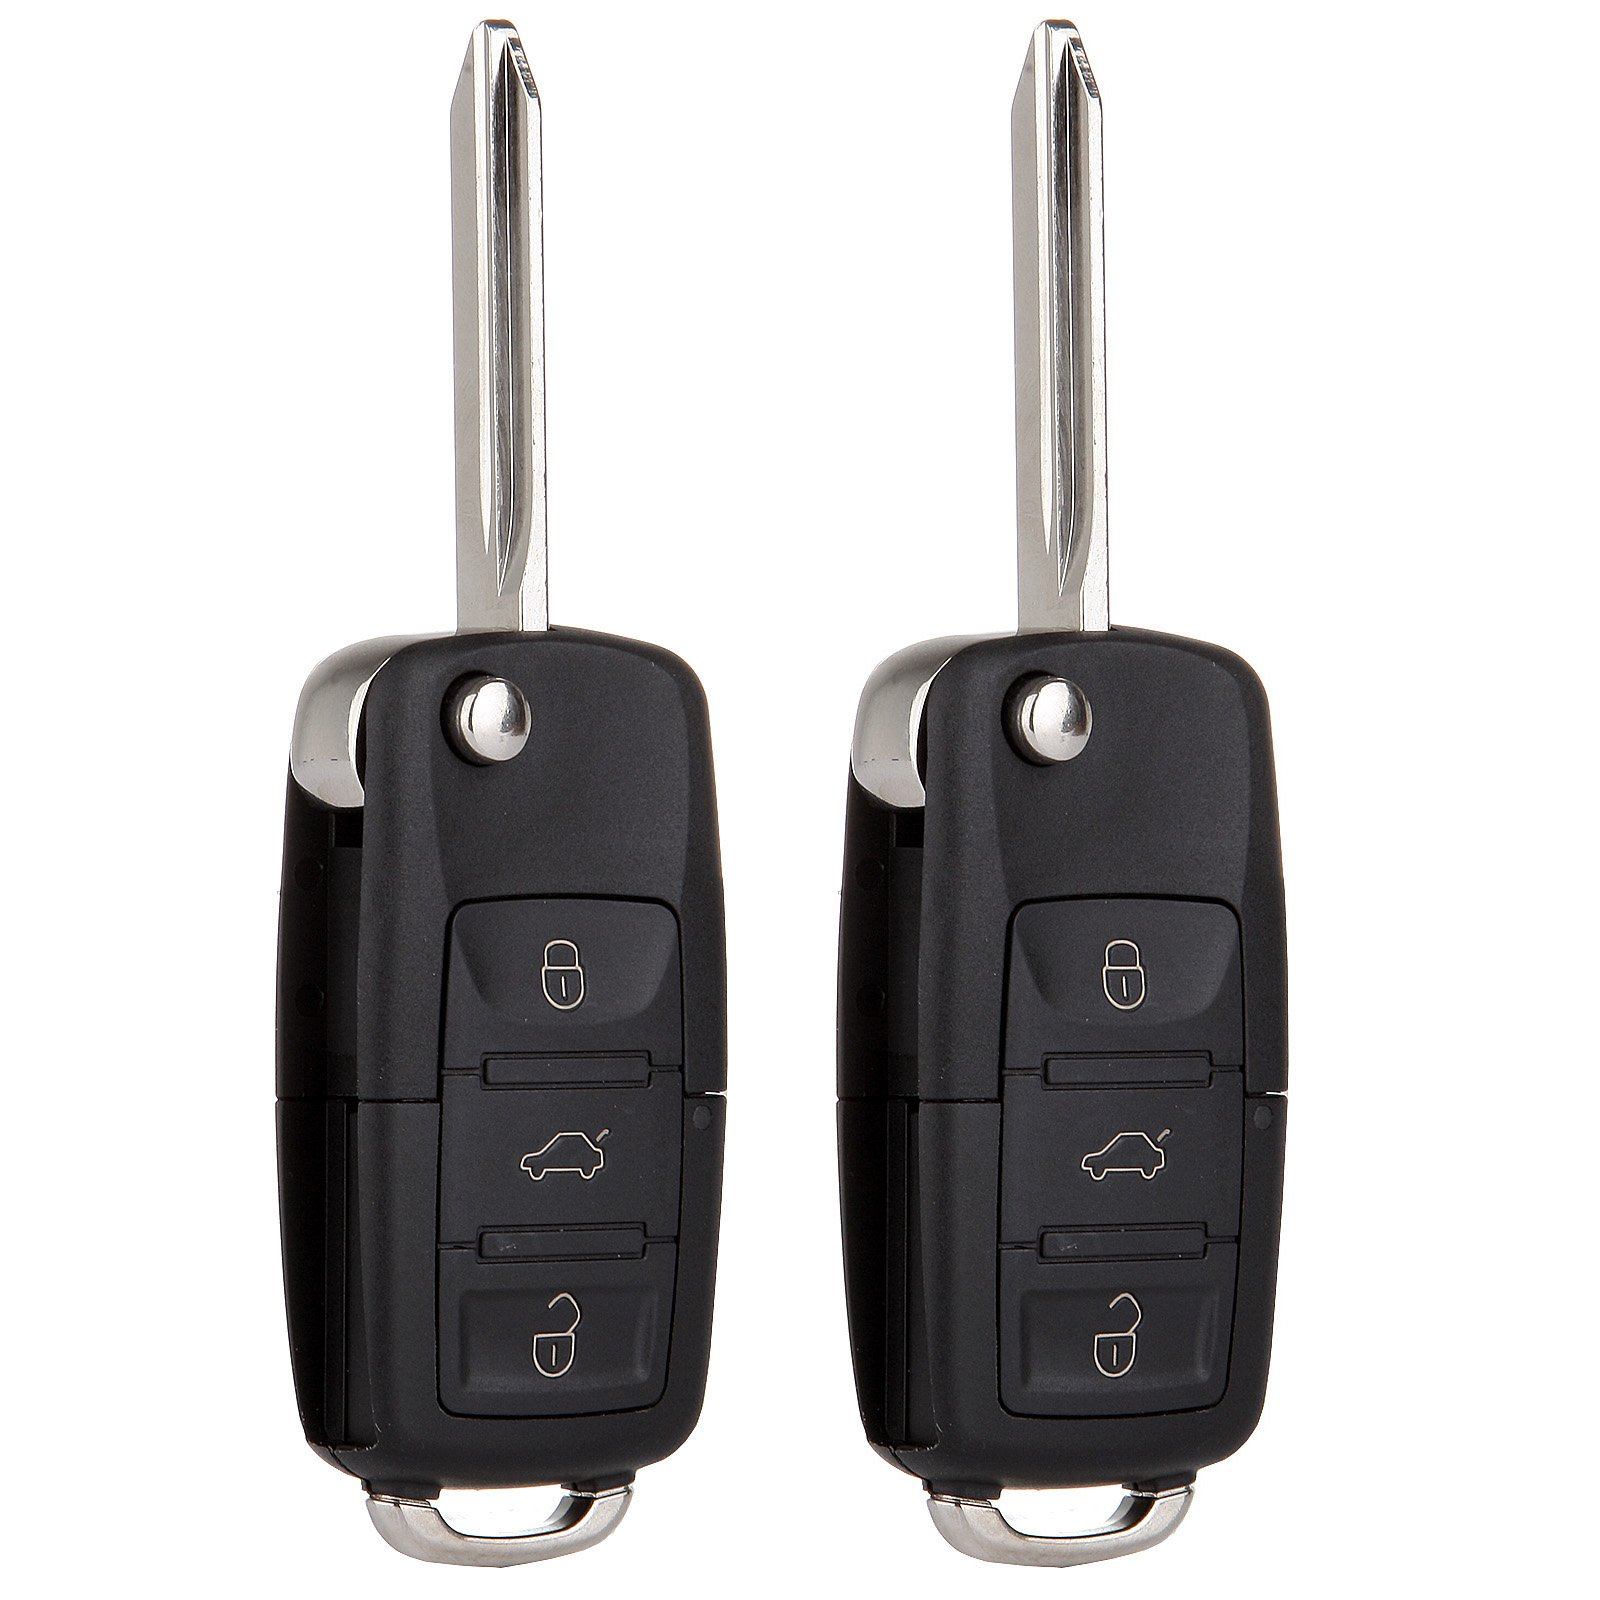 SCITOO 2X Keyless Entry Remote Flip Key Fob Remote 4 Buttons Replacement fit 00-2005 Ford Explorer CWTWB1U212